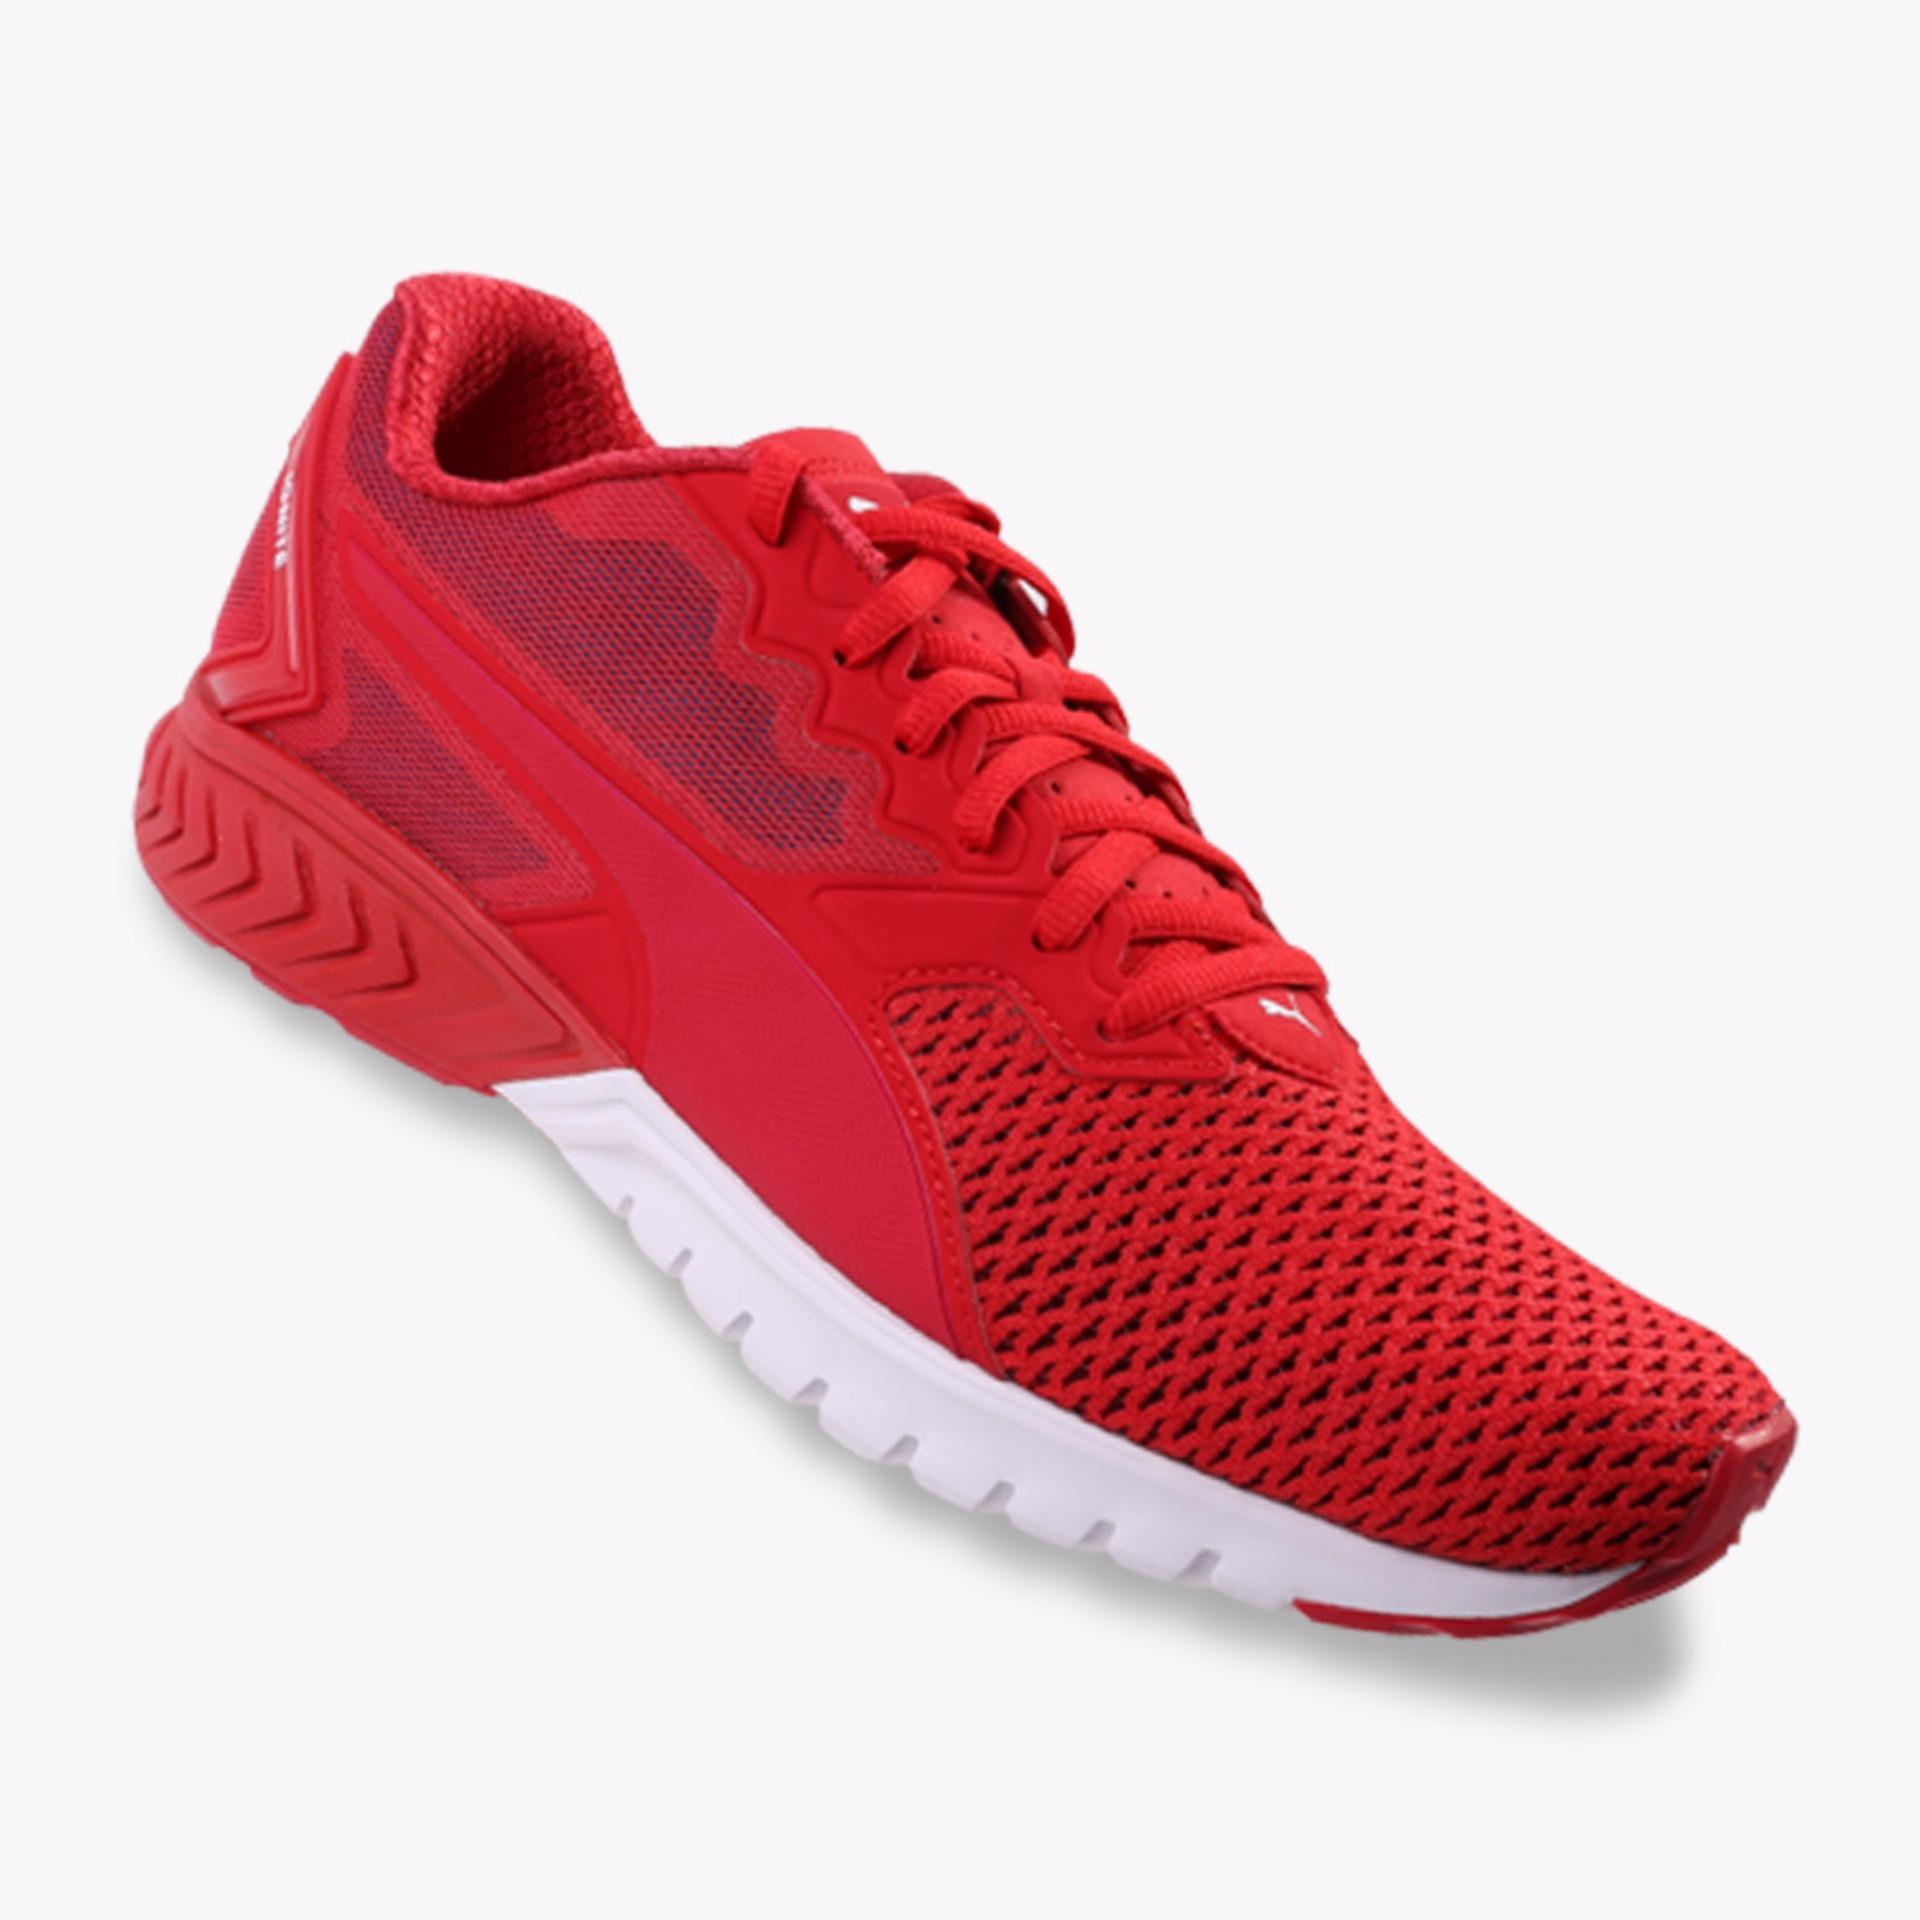 Puma Ignite Dual Mesh Men S Running Shoes Merah Puma Diskon 50